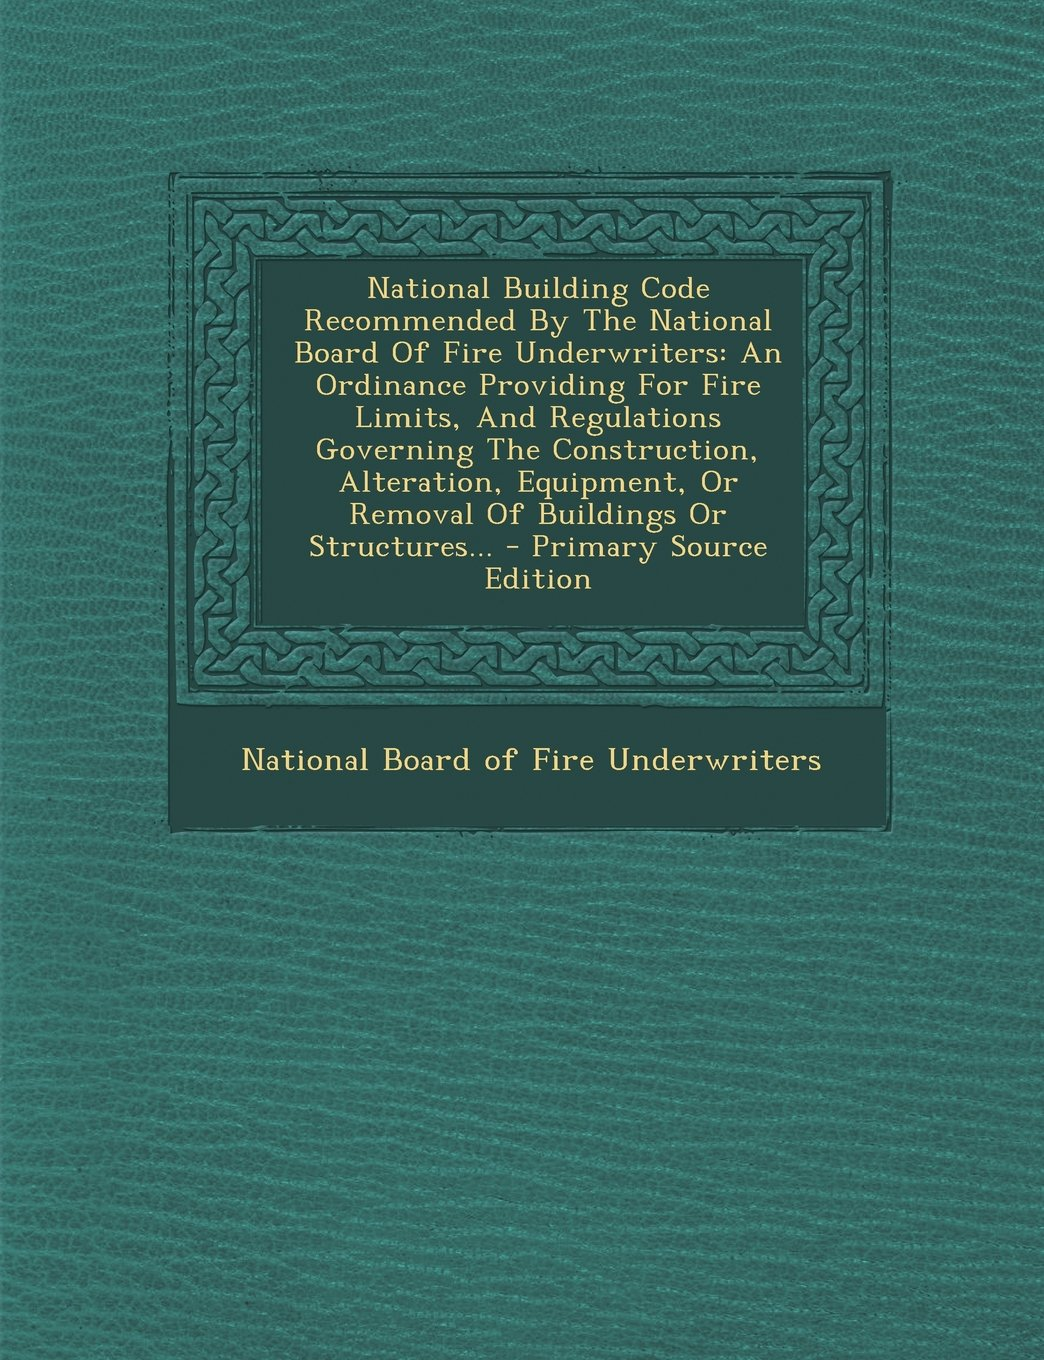 National Building Code Recommended By The National Board Of Fire Underwriters: An Ordinance Providing For Fire Limits, And Regulations Governing The ... Or Removal Of Buildings Or Structures... ebook